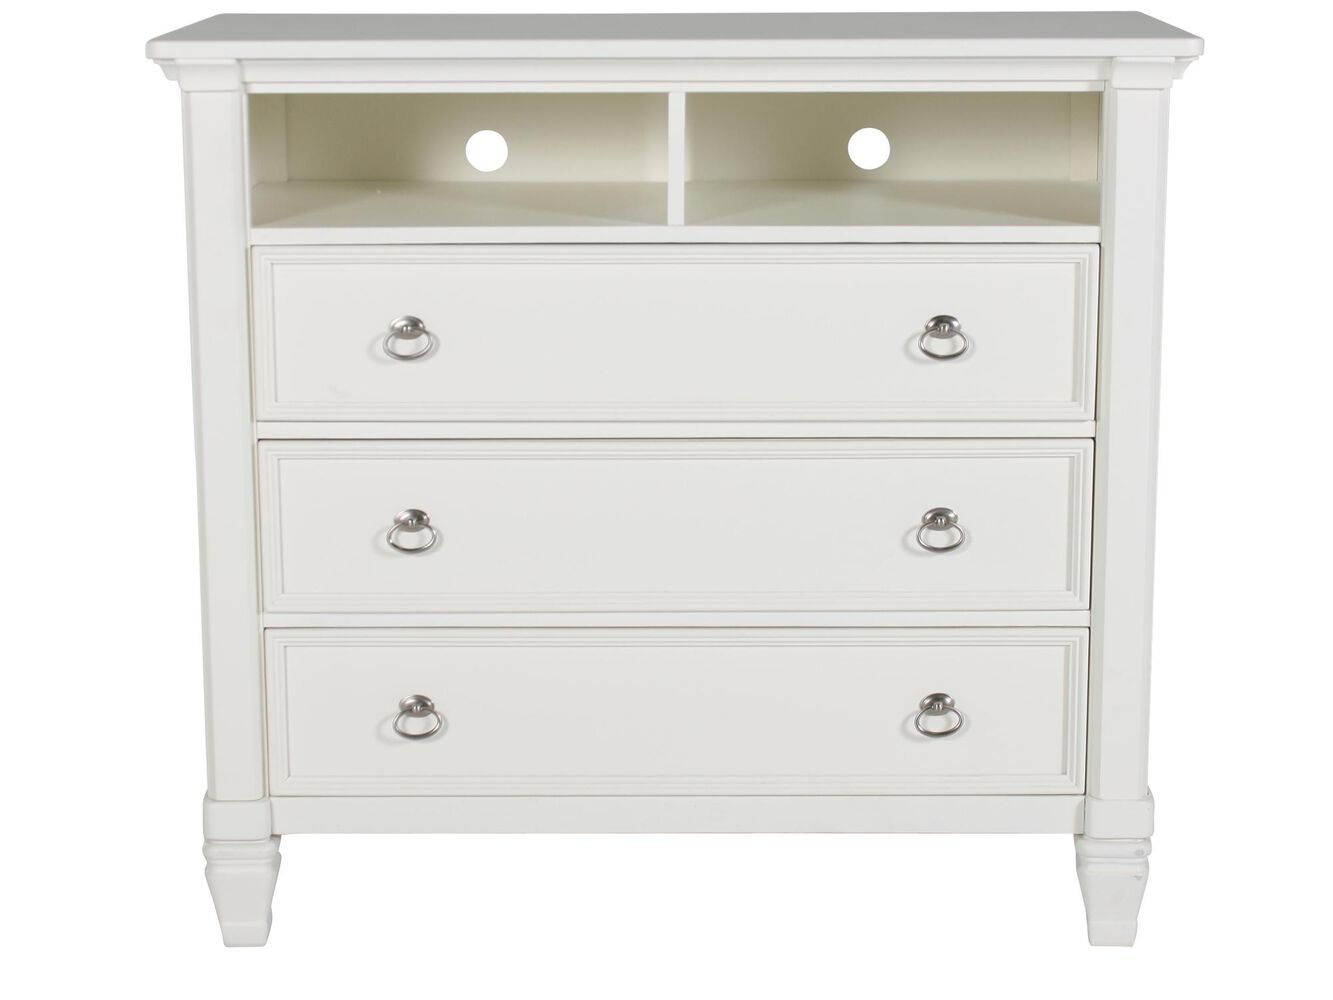 white bedroom storage liberty summer media panel house dresser i oyster set gallery